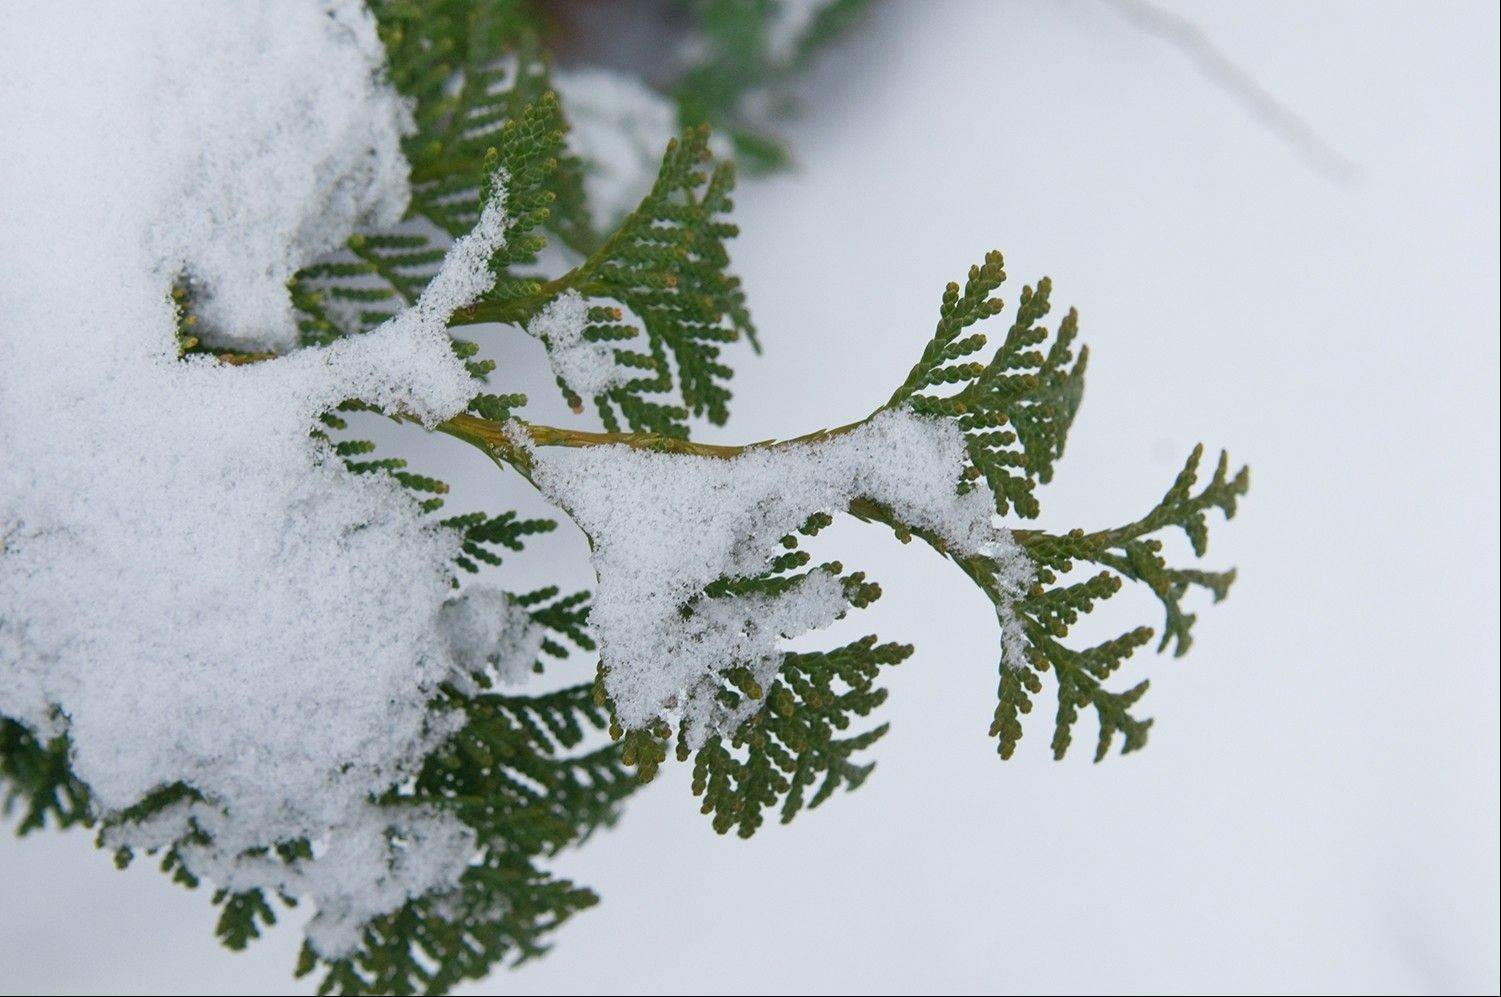 It's best to carefully shake heavy, wet snow off plants while it's snowing to minimize damage to the plants.